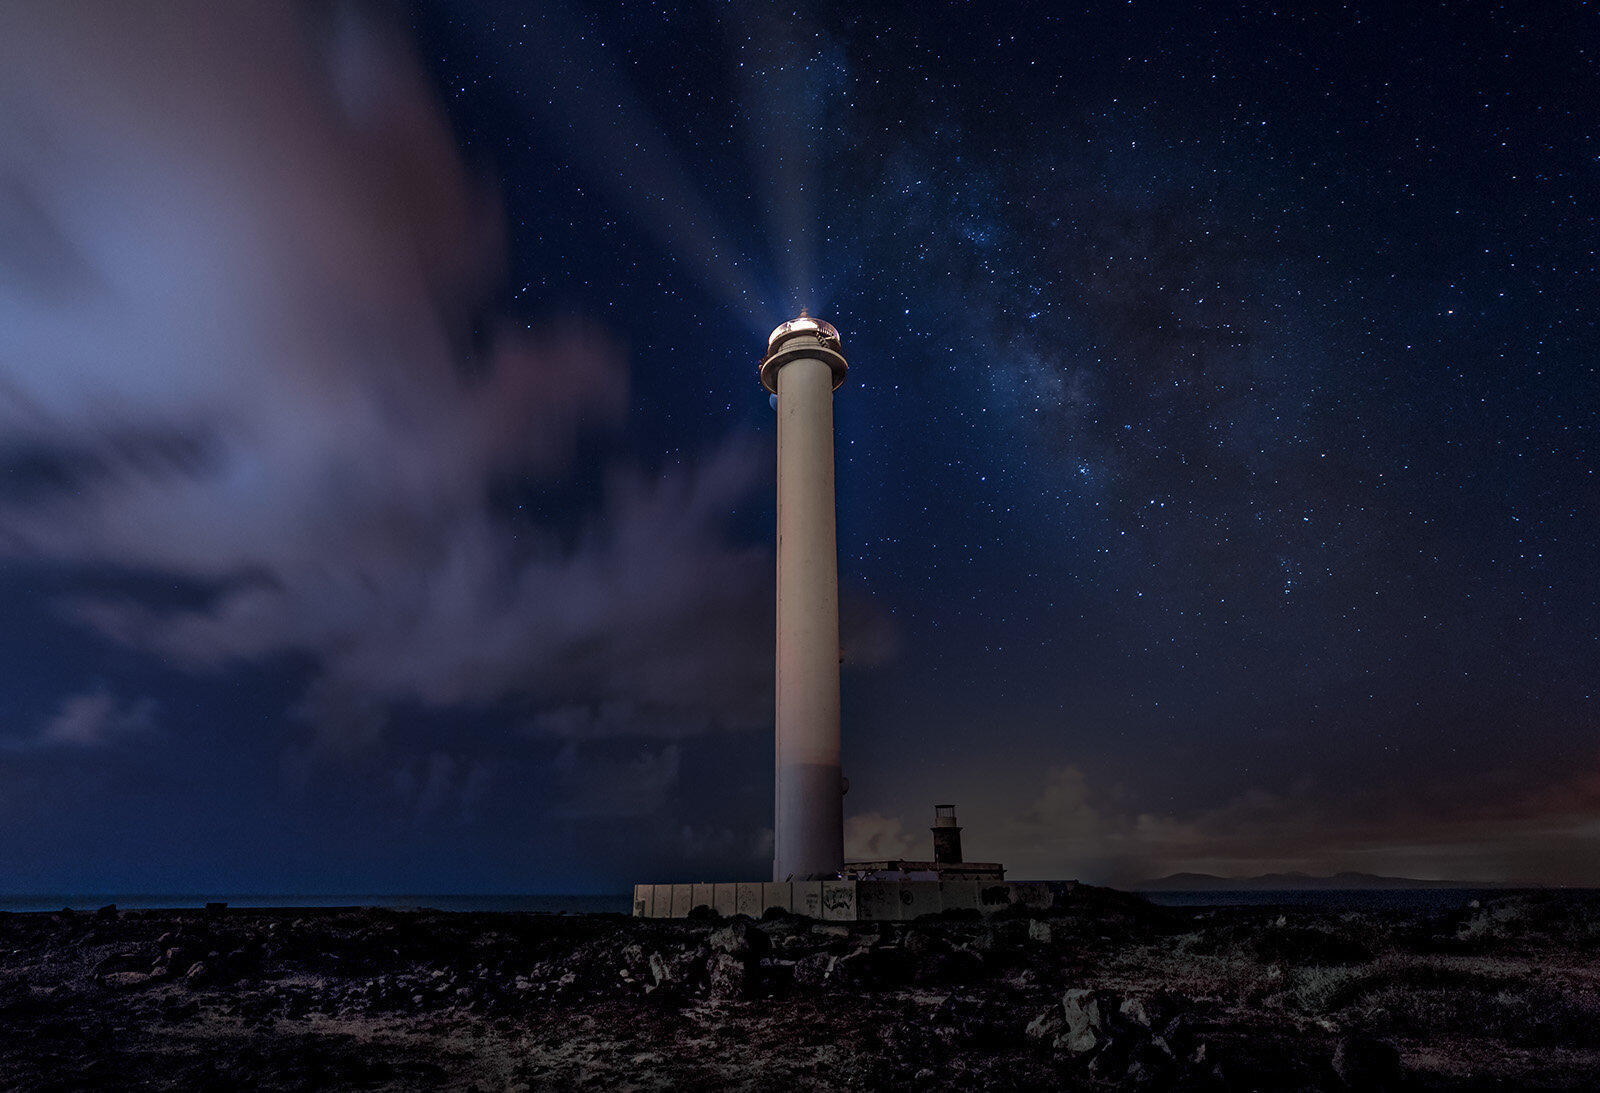 LIGHTHOUSE AT PECHIGUERA - Neil Hall (Best print in Class Two)